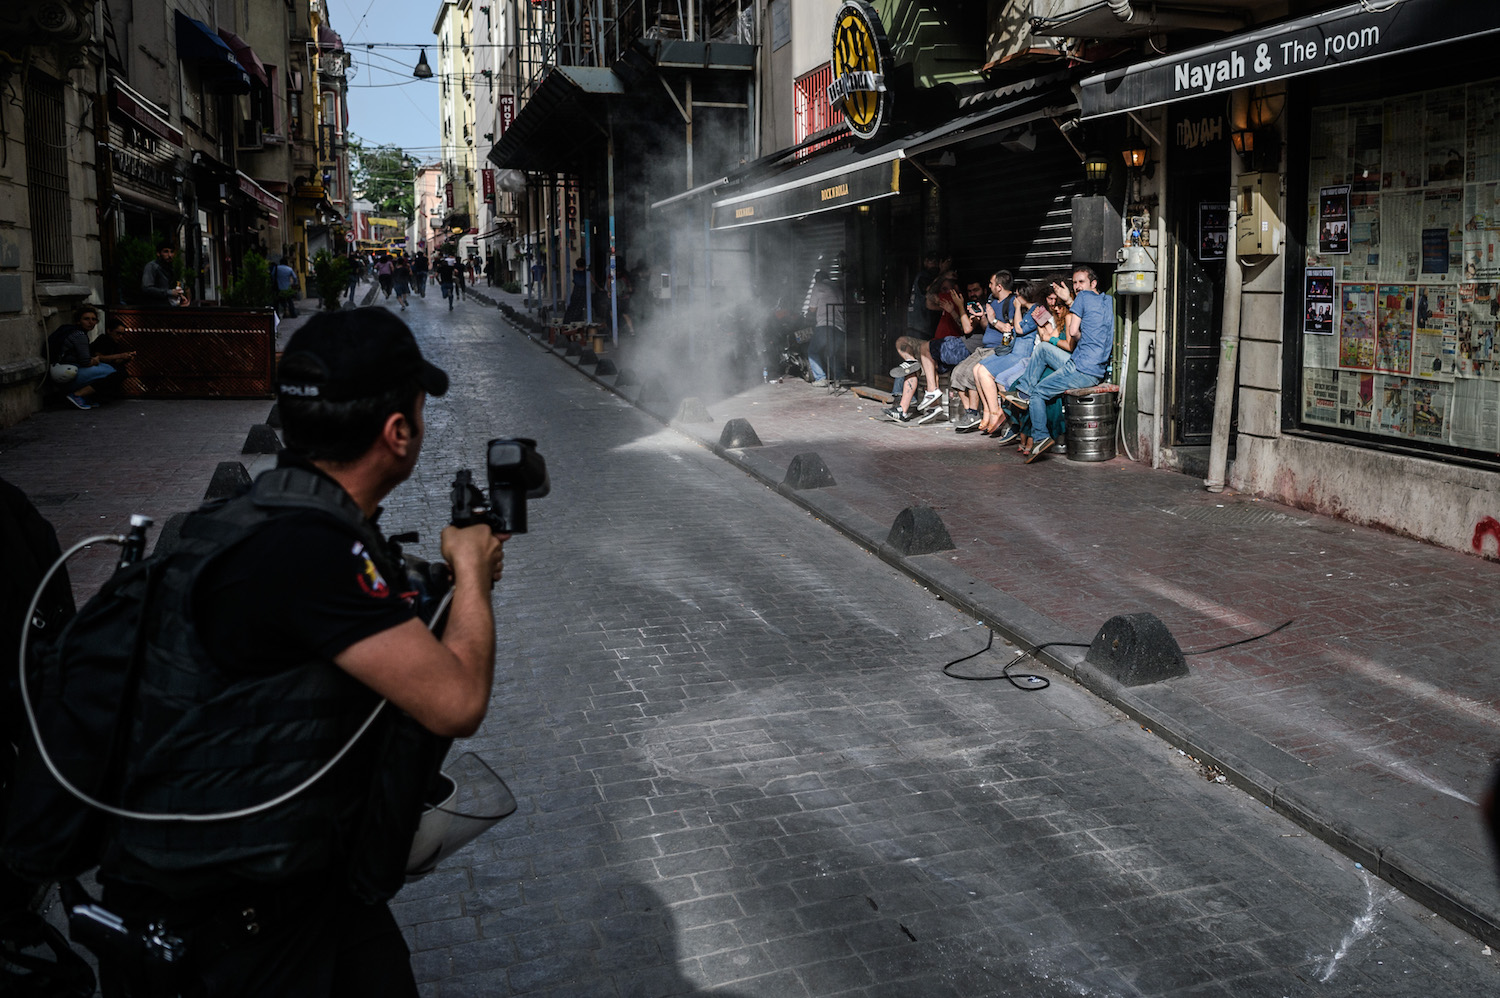 """Turkish anti-riot police officers fire rubber bullets to disperse demonstrators gathered for a rally staged by the LGBT community on Istiklal avenue in Istanbul on June 19, 2016. Turkish riot police fired rubber bullets and tear gas to break up a rally staged by the LGBT community in Istanbul on June 19 in defiance of a ban. Several hundred police surrounded the main Taksim Square -- where all demonstrations have been banned since 2013 -- to prevent the """"Trans Pride"""" event taking place during Ramadan.  / AFP / OZAN KOSE        (Photo credit should read OZAN KOSE/AFP/Getty Images)"""